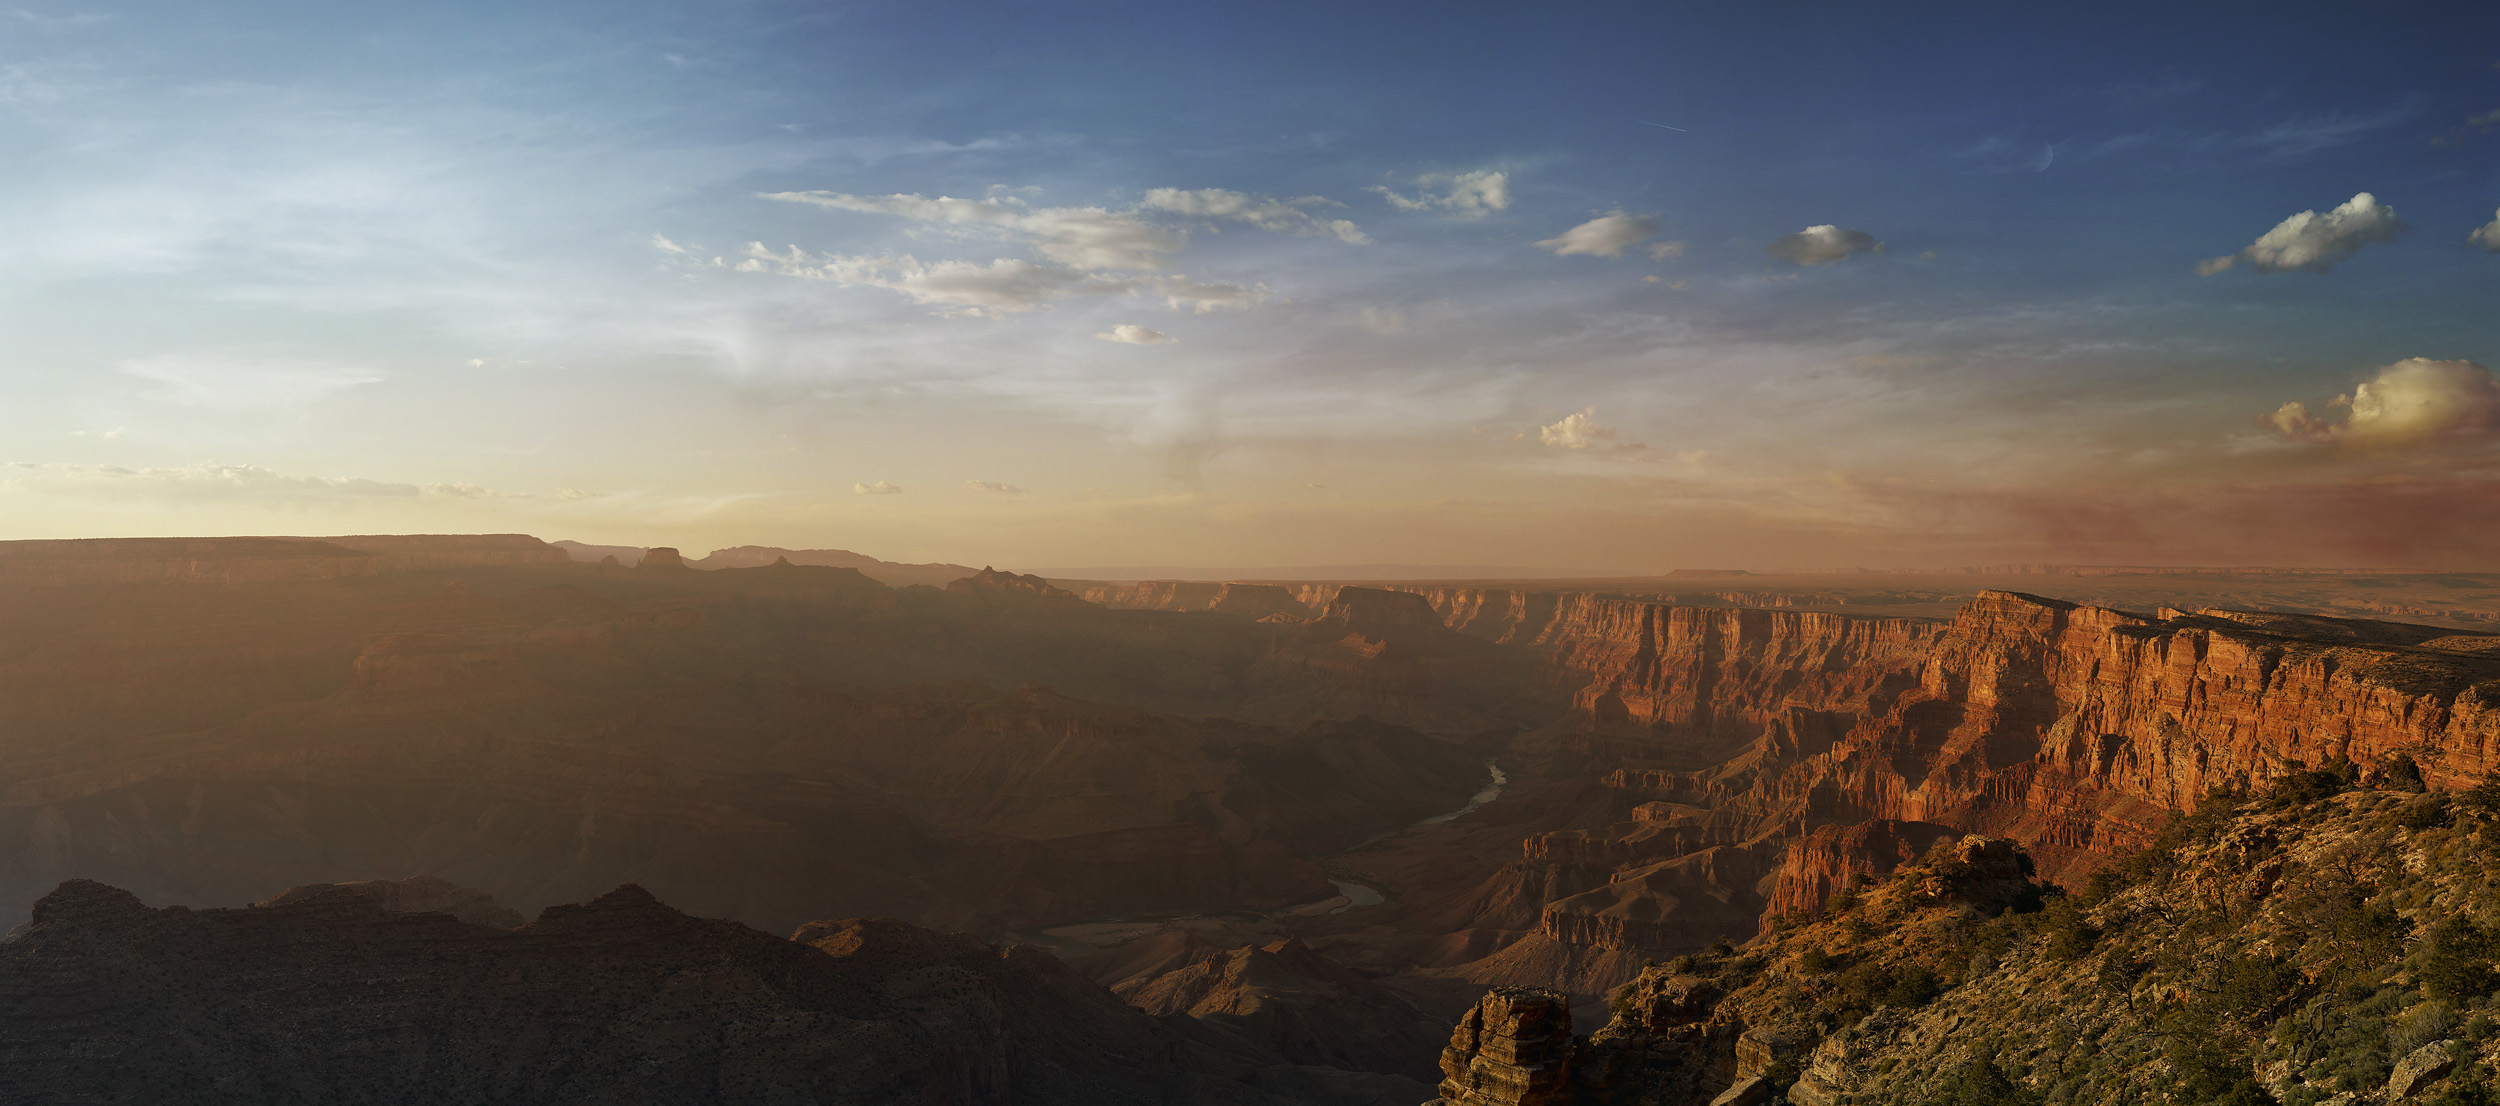 photo of the Grand Canyon at sunset by Arizona Landscape Photographer Travis Neely